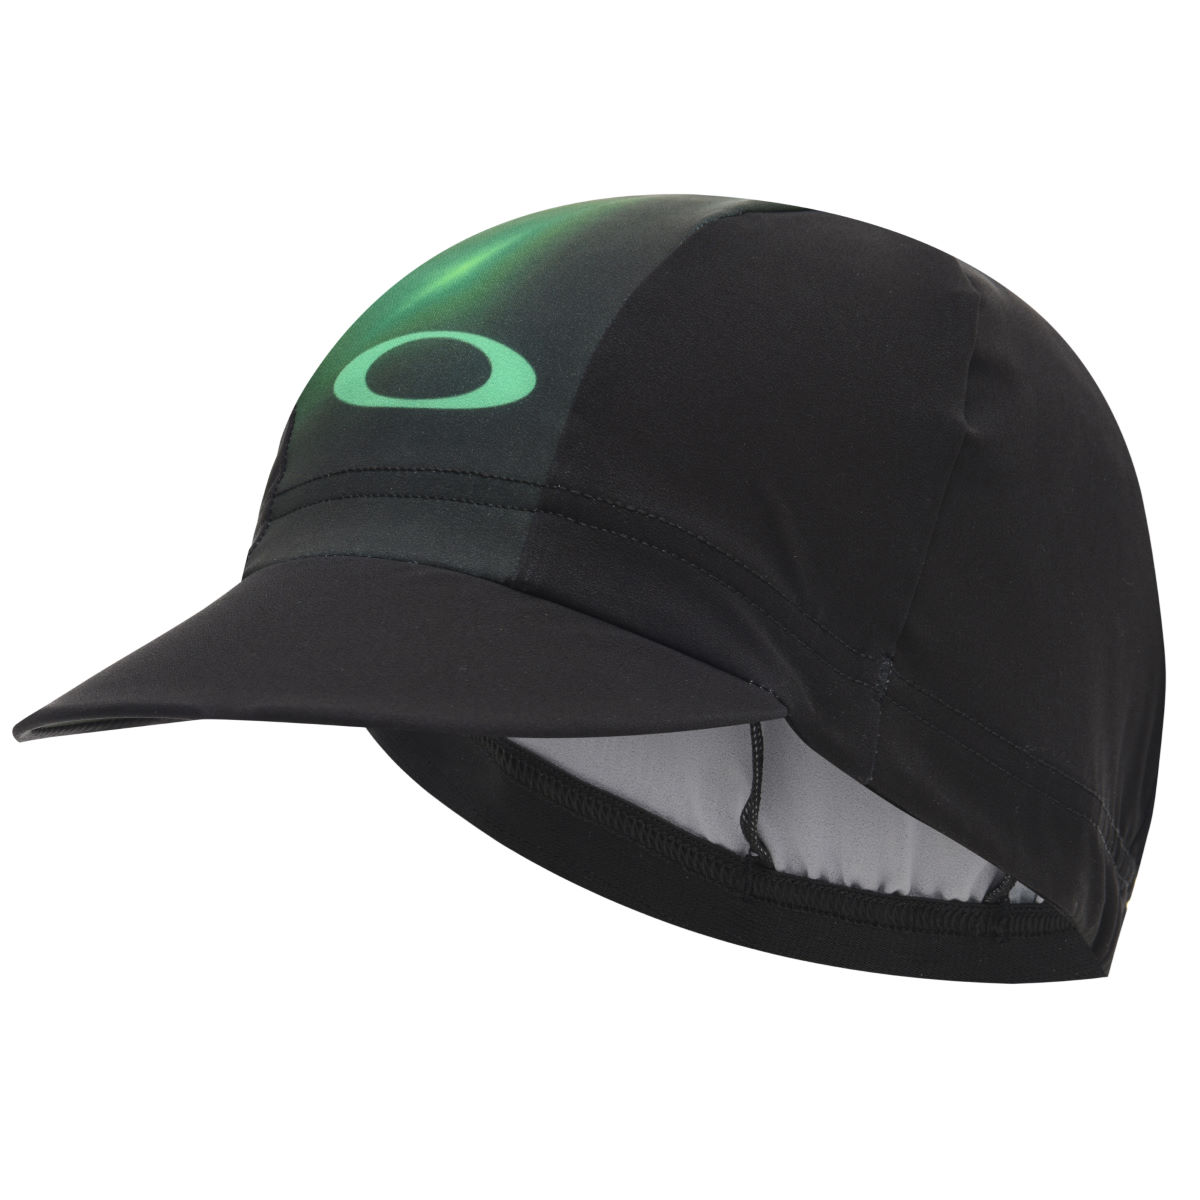 Oakley Cycling Cap Laser Green - Gorras